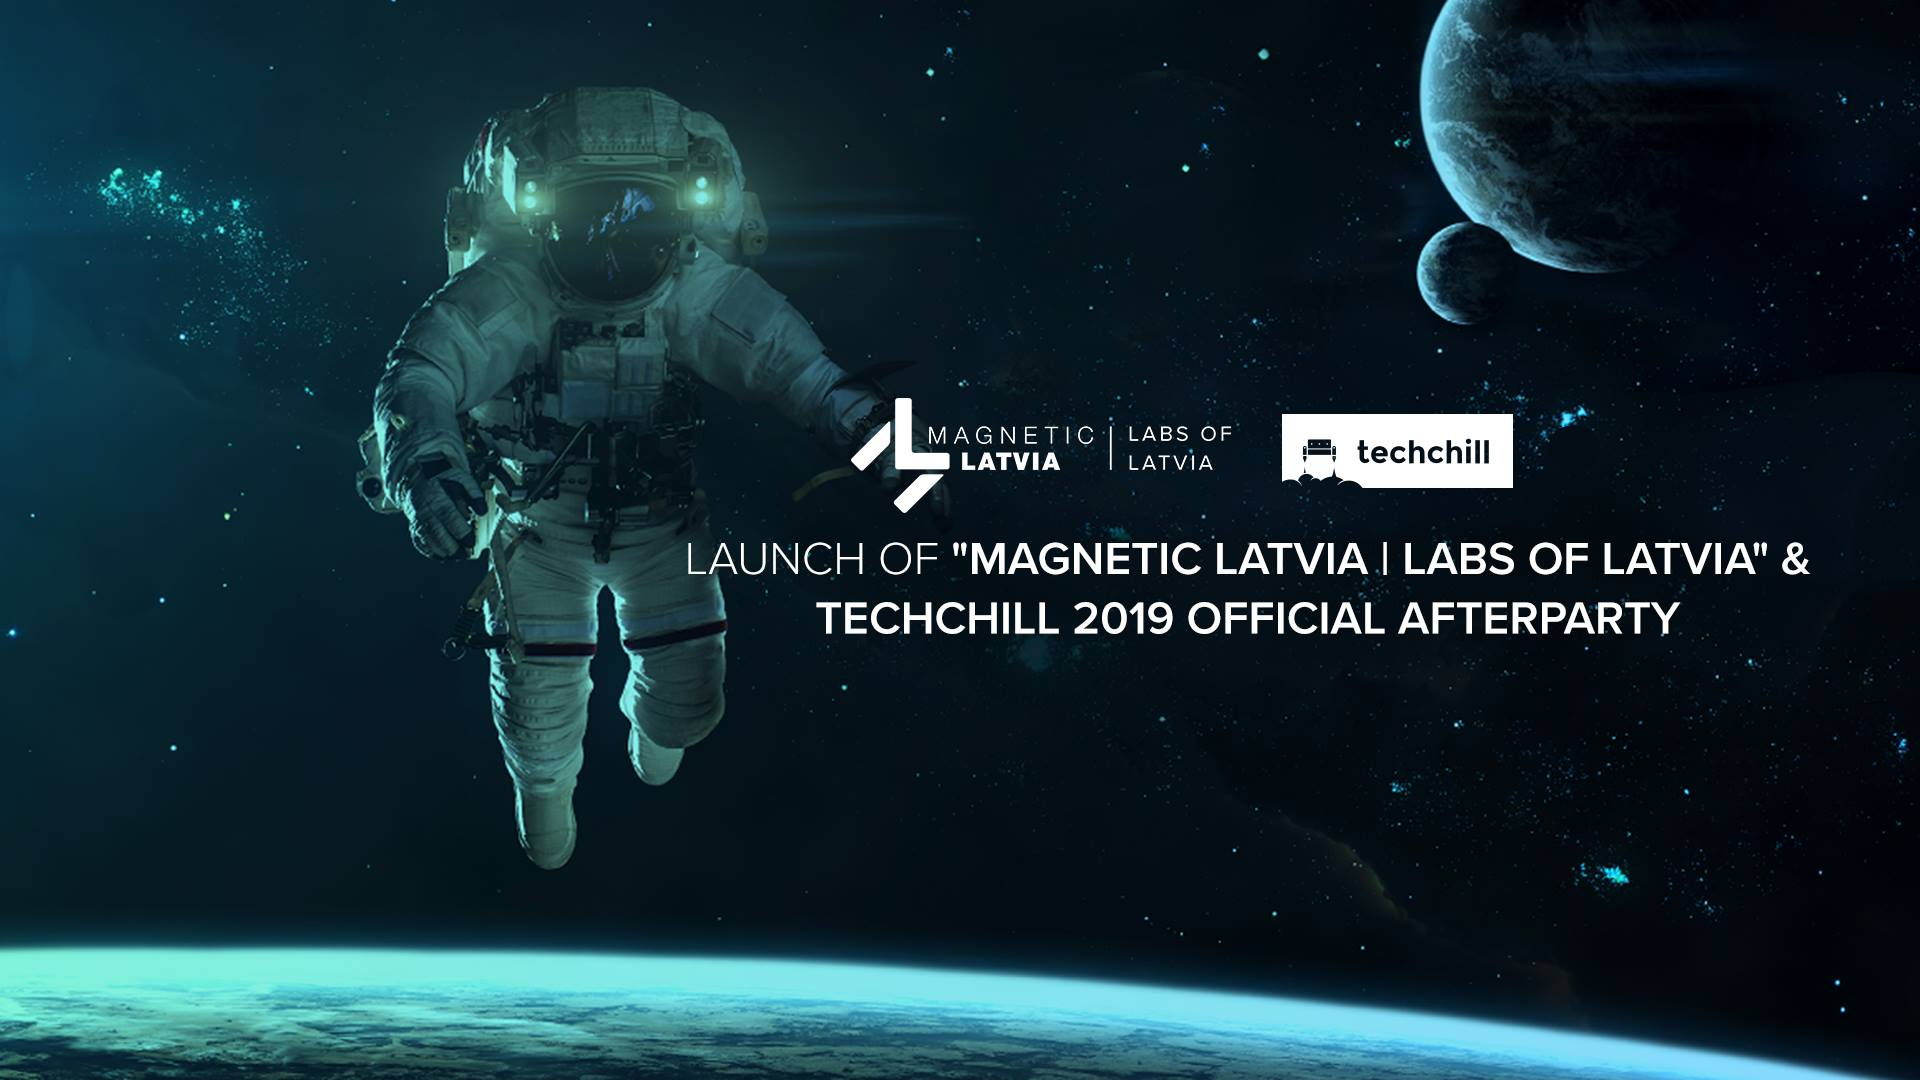 Labs of Latvia Re-launch & TechChill Afterparty